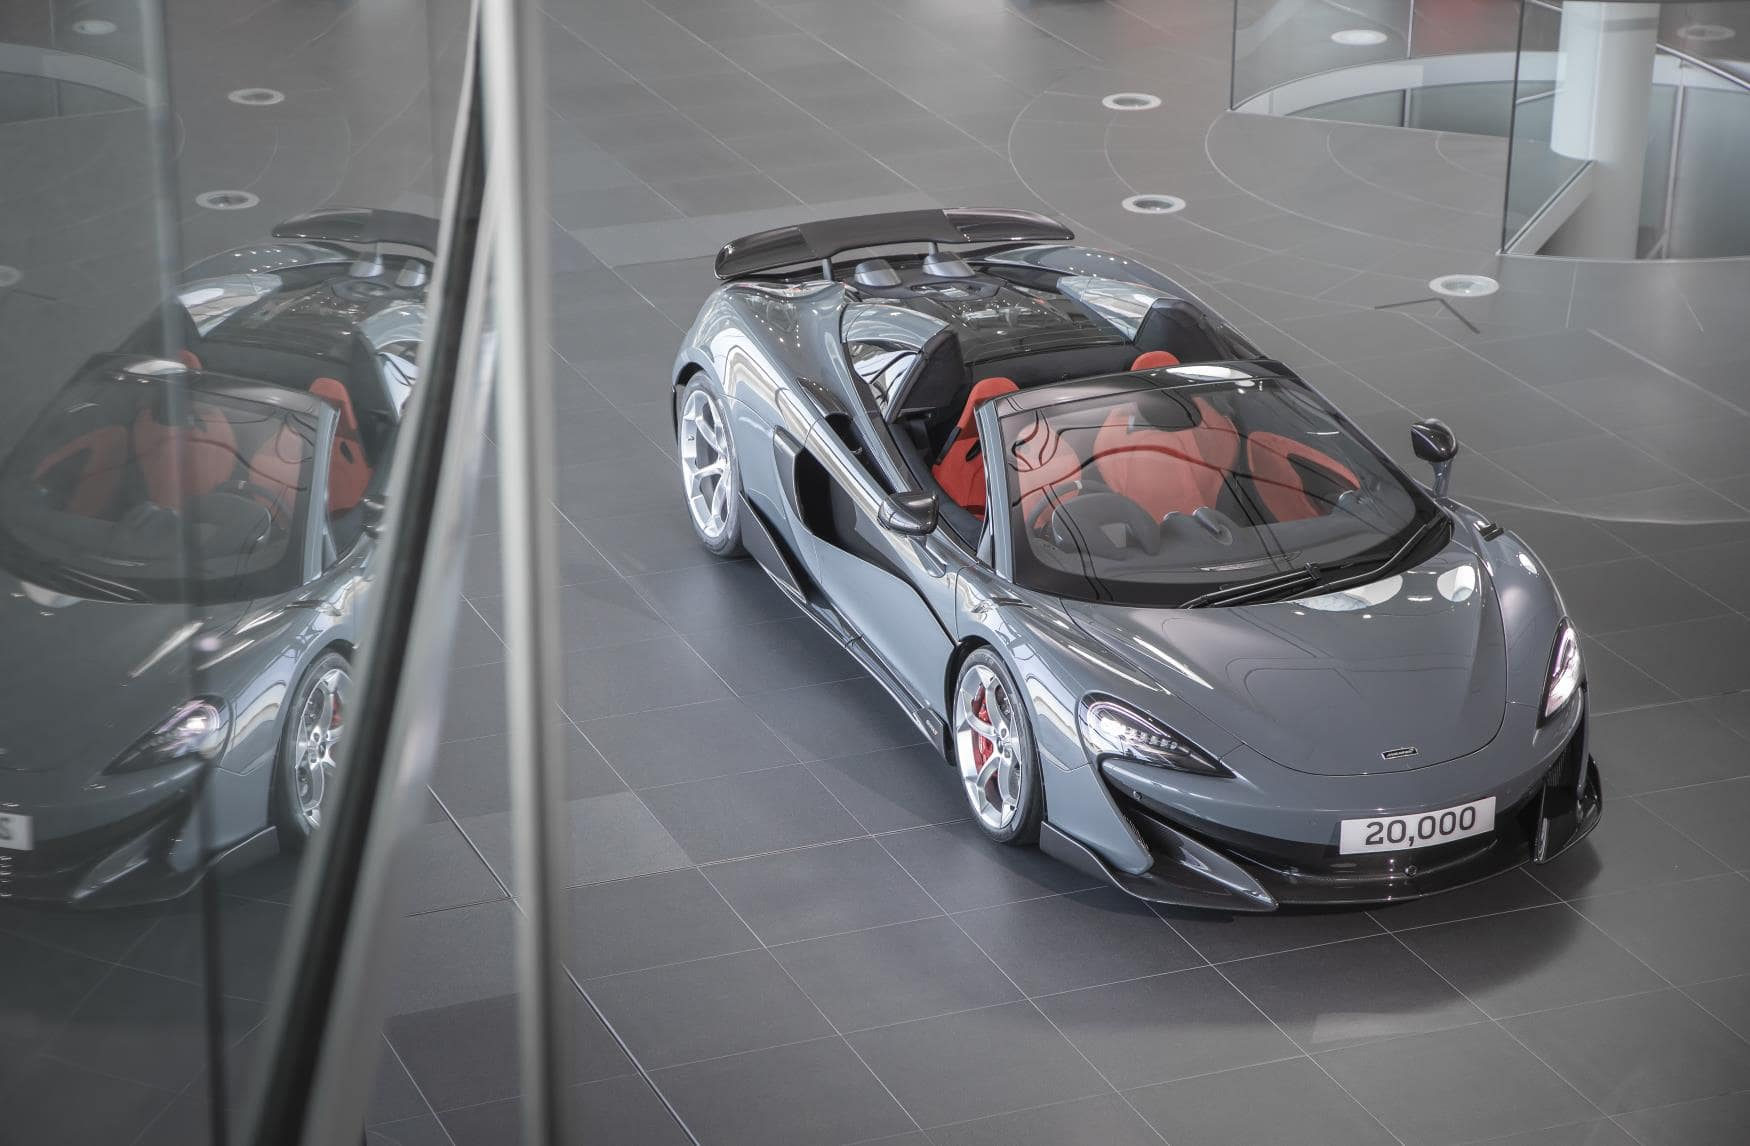 McLaren Automotive Builds 20,000th Car